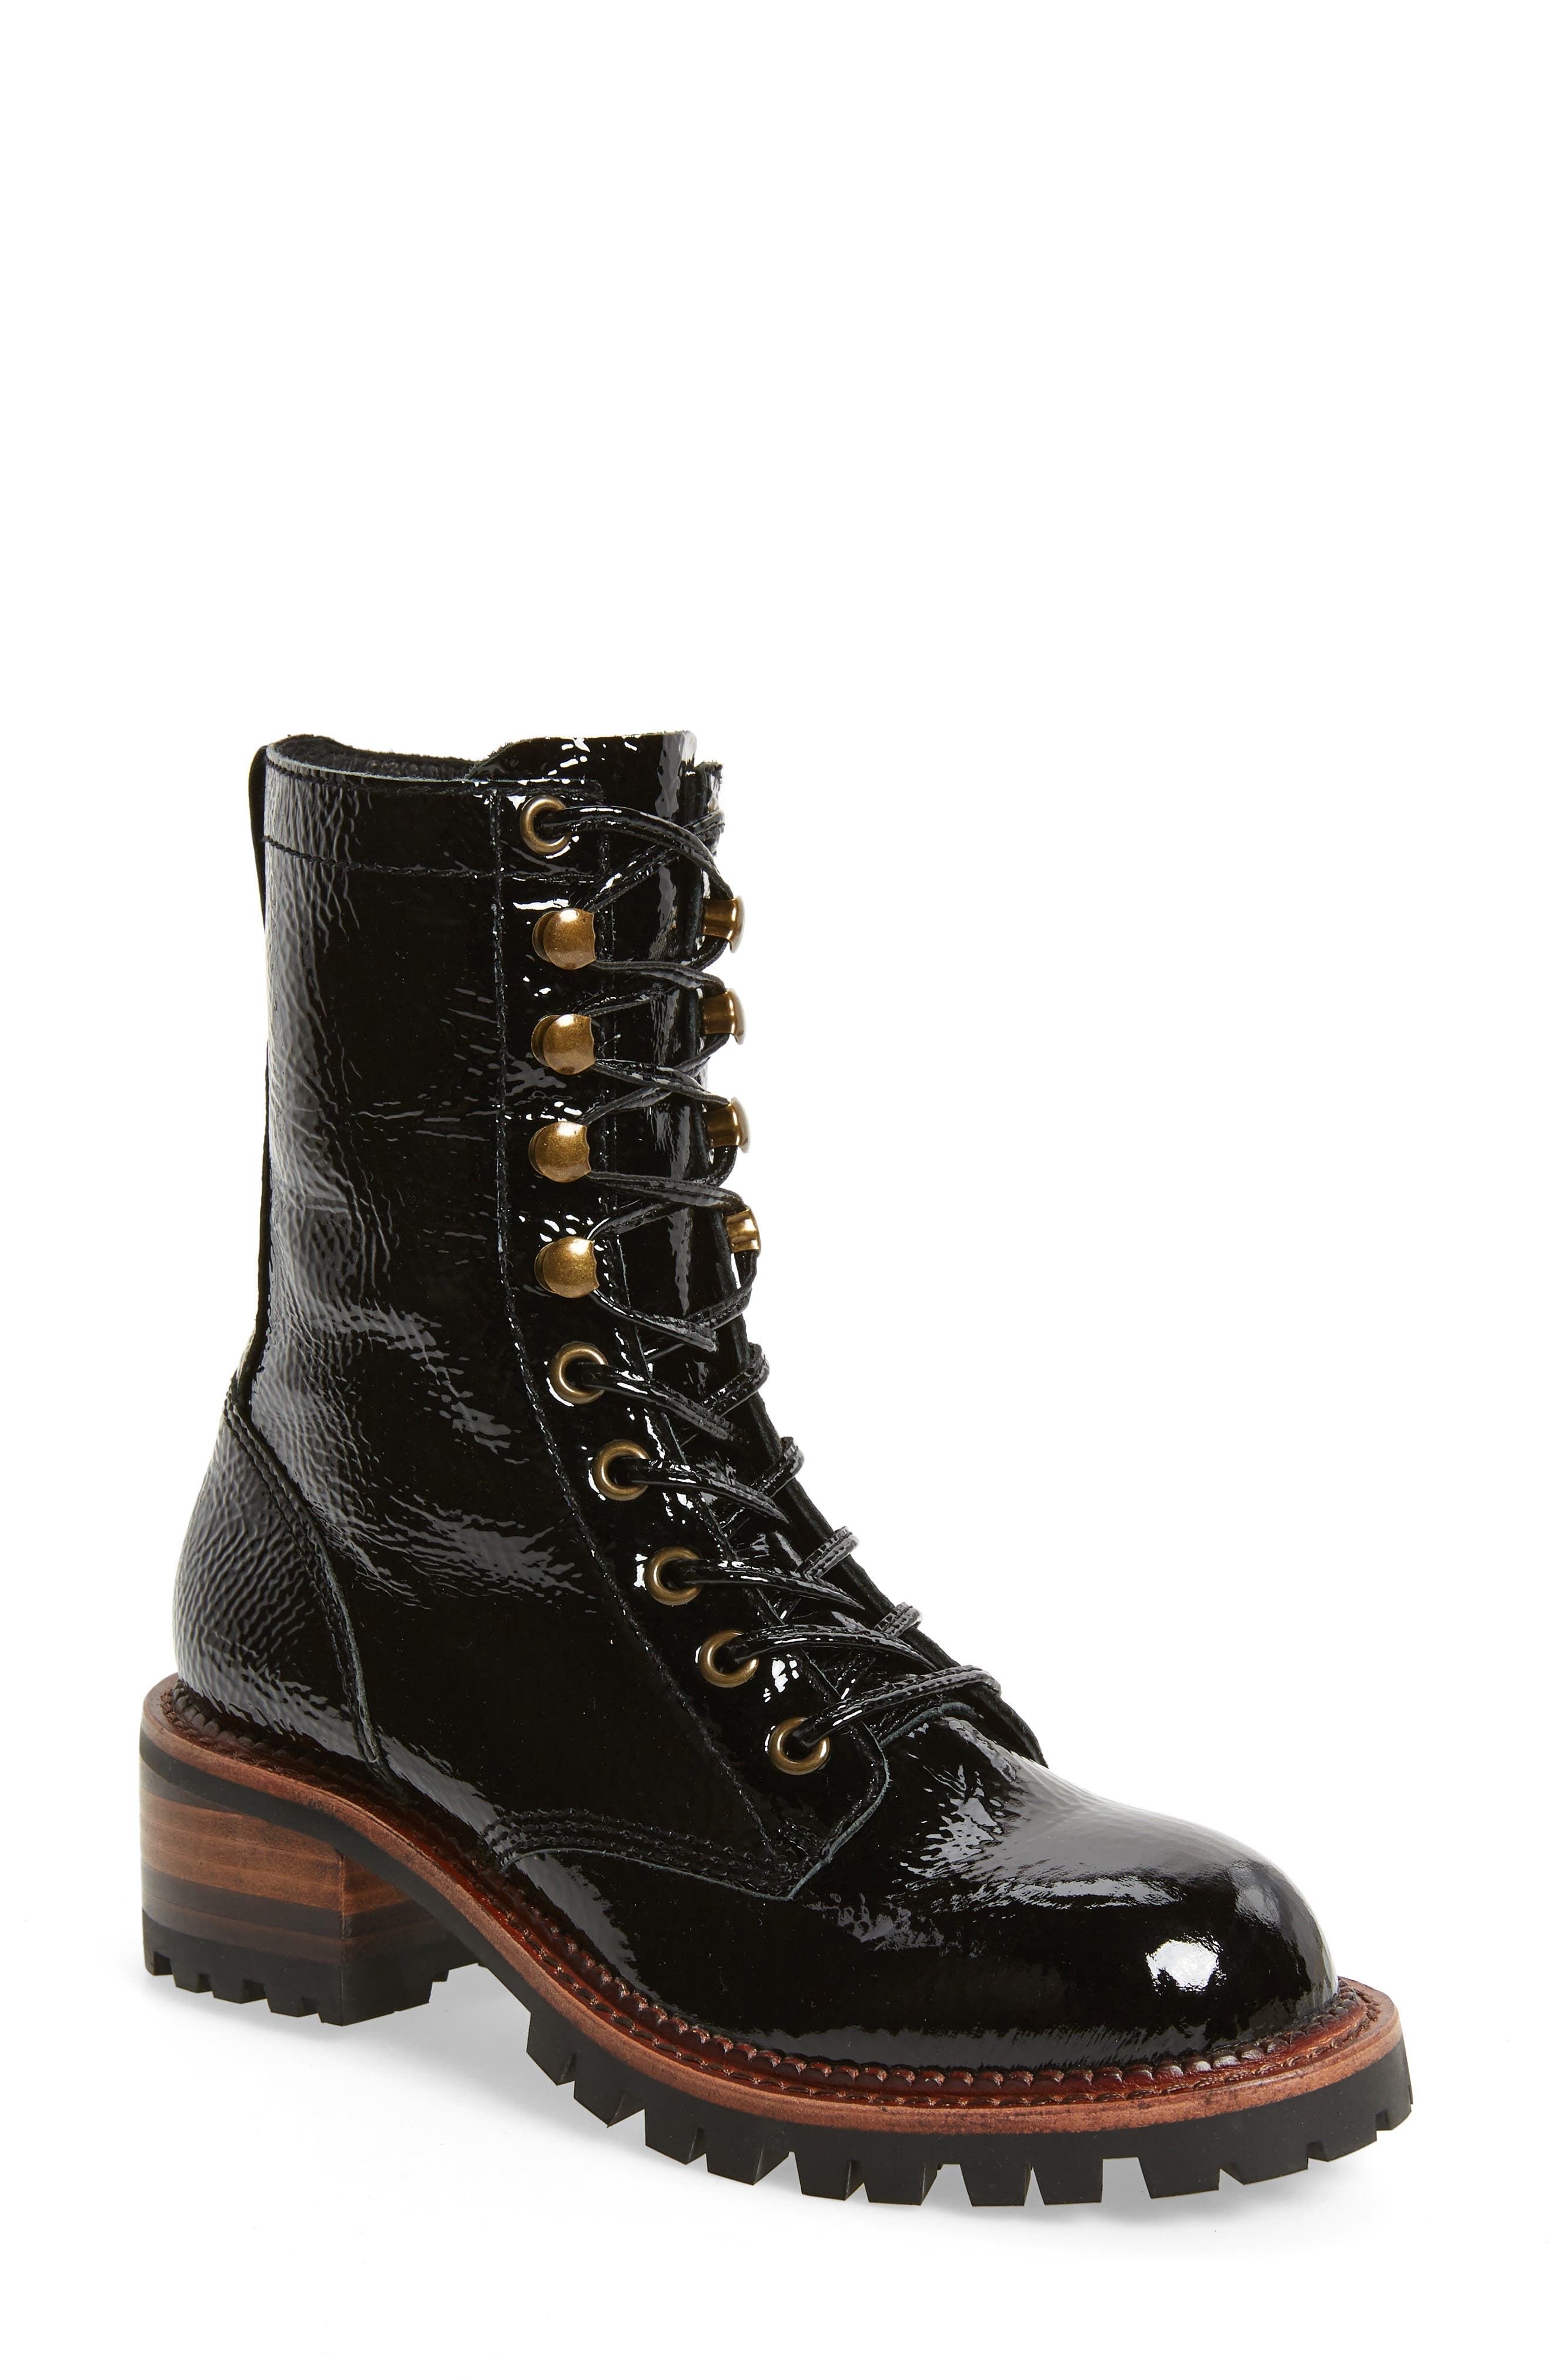 Jeffrey Campbell Sycamore Patent Leather Boot